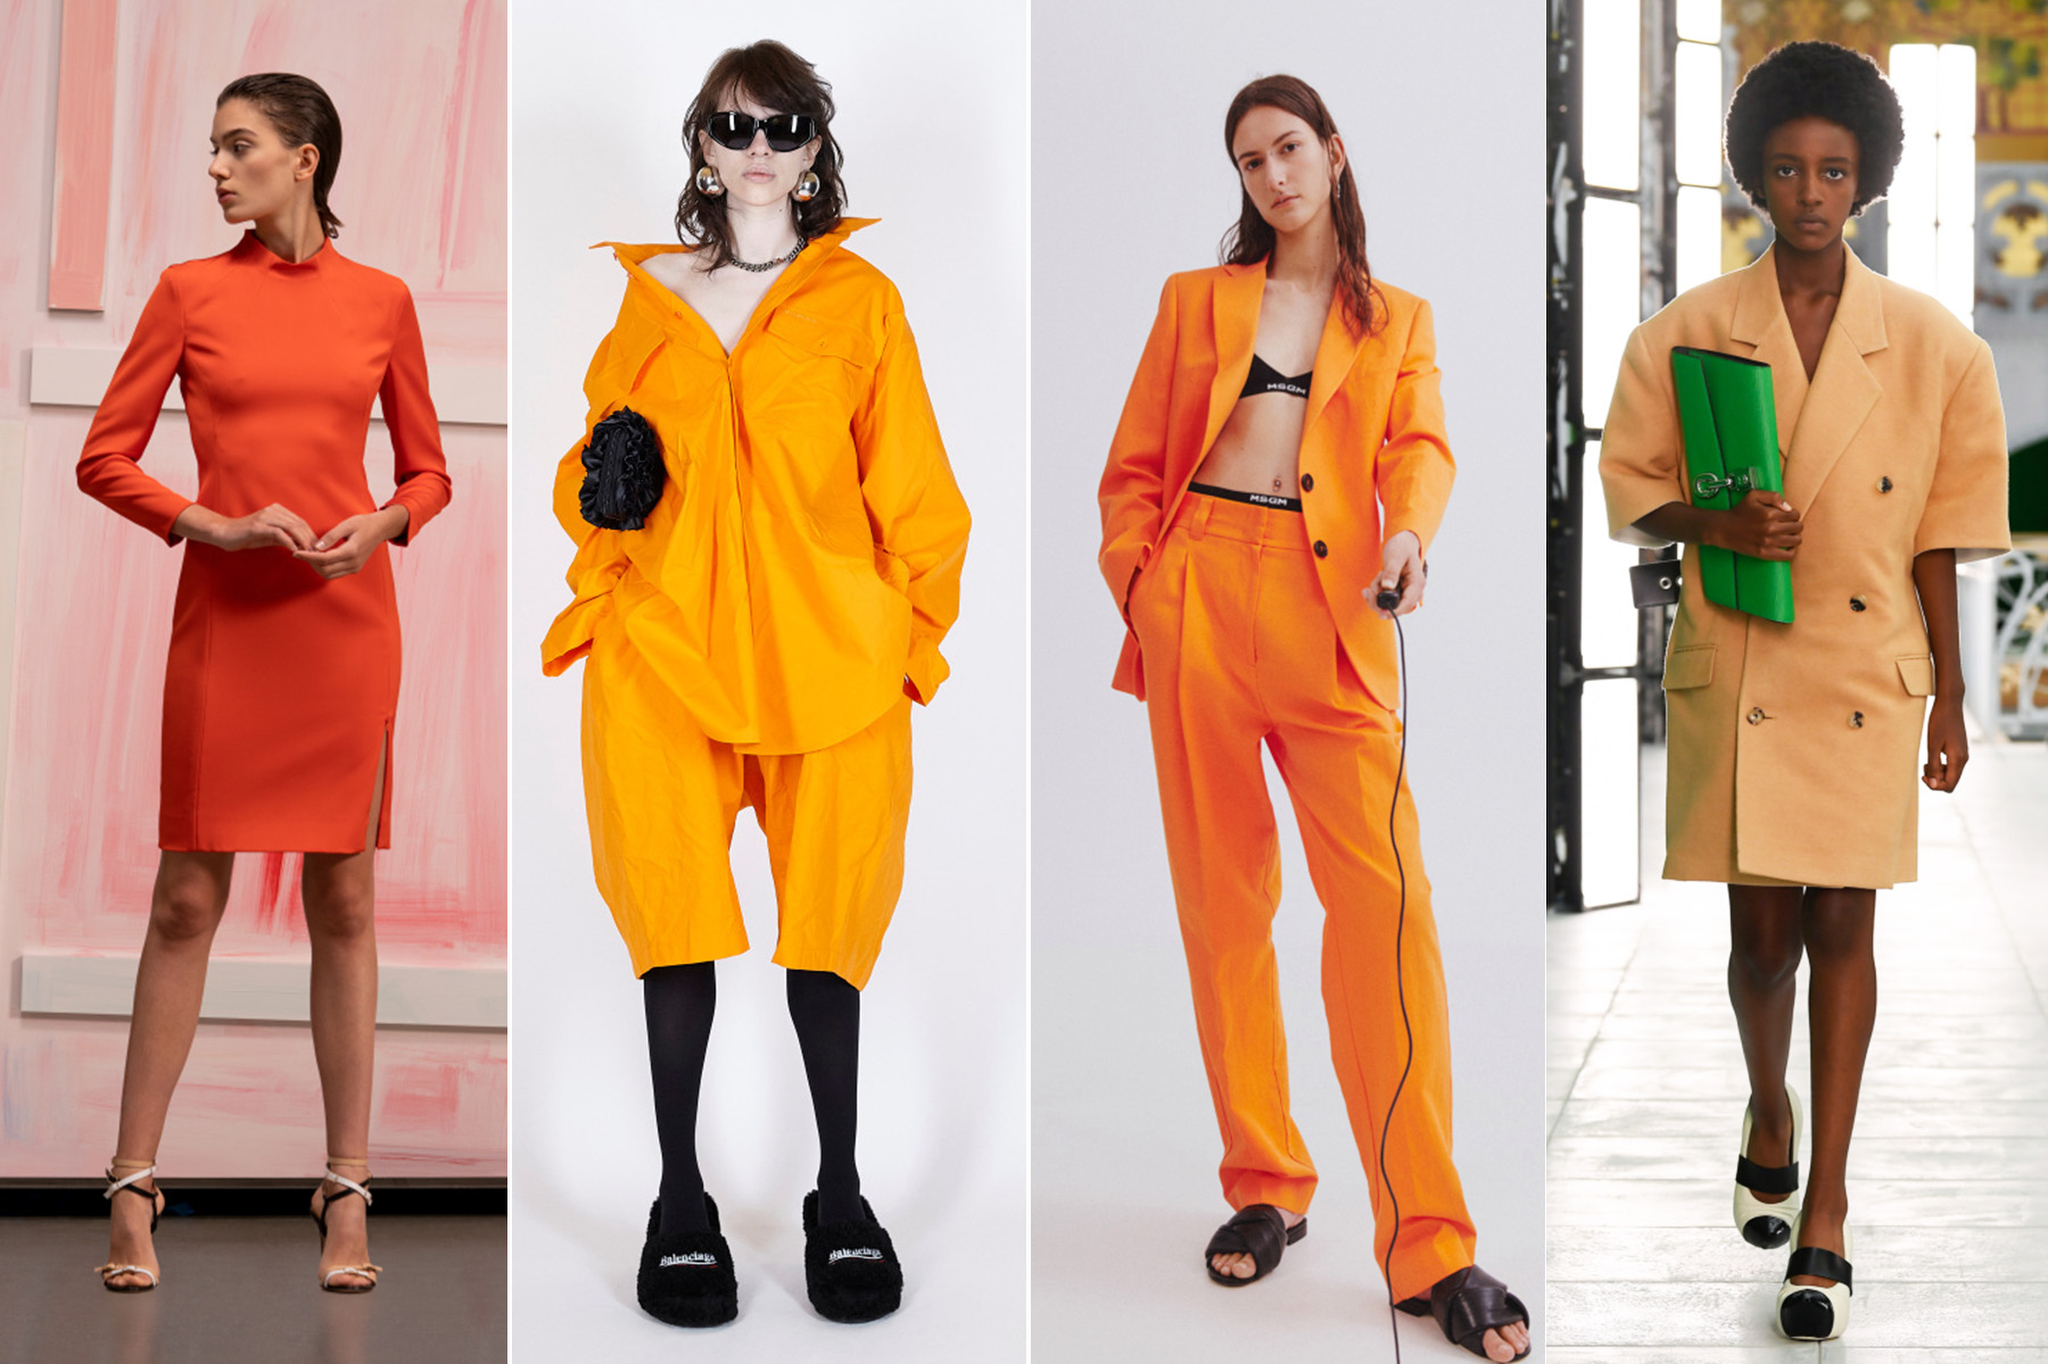 The 8 Biggest Spring 8 Fashion Trends From Europe [PHOTOS] – WWD